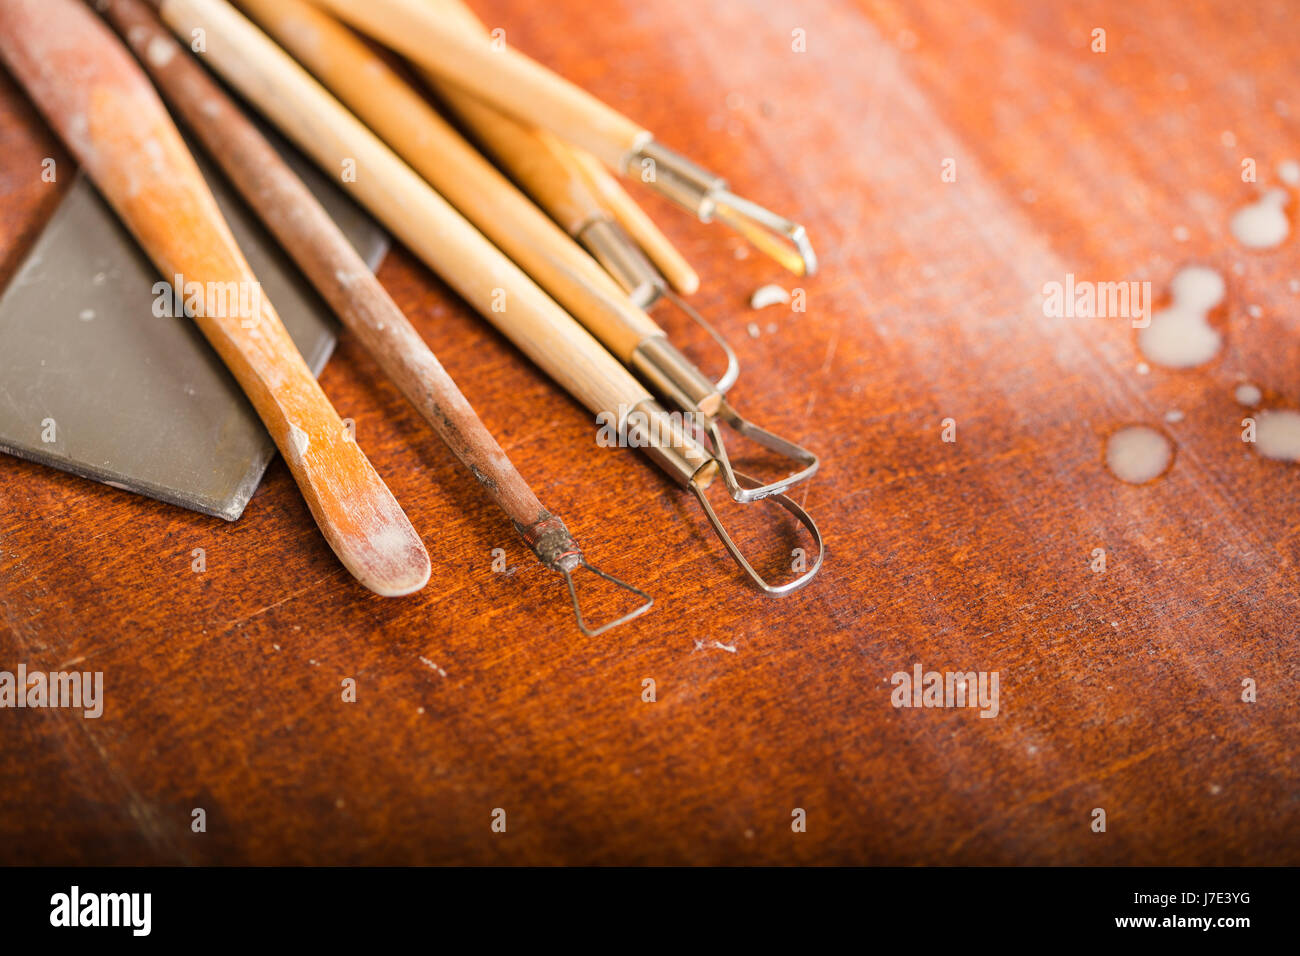 pottery, workshop, ceramics art concept - close-up on sculpting tools set on wooden table, clay stacks, different - Stock Image